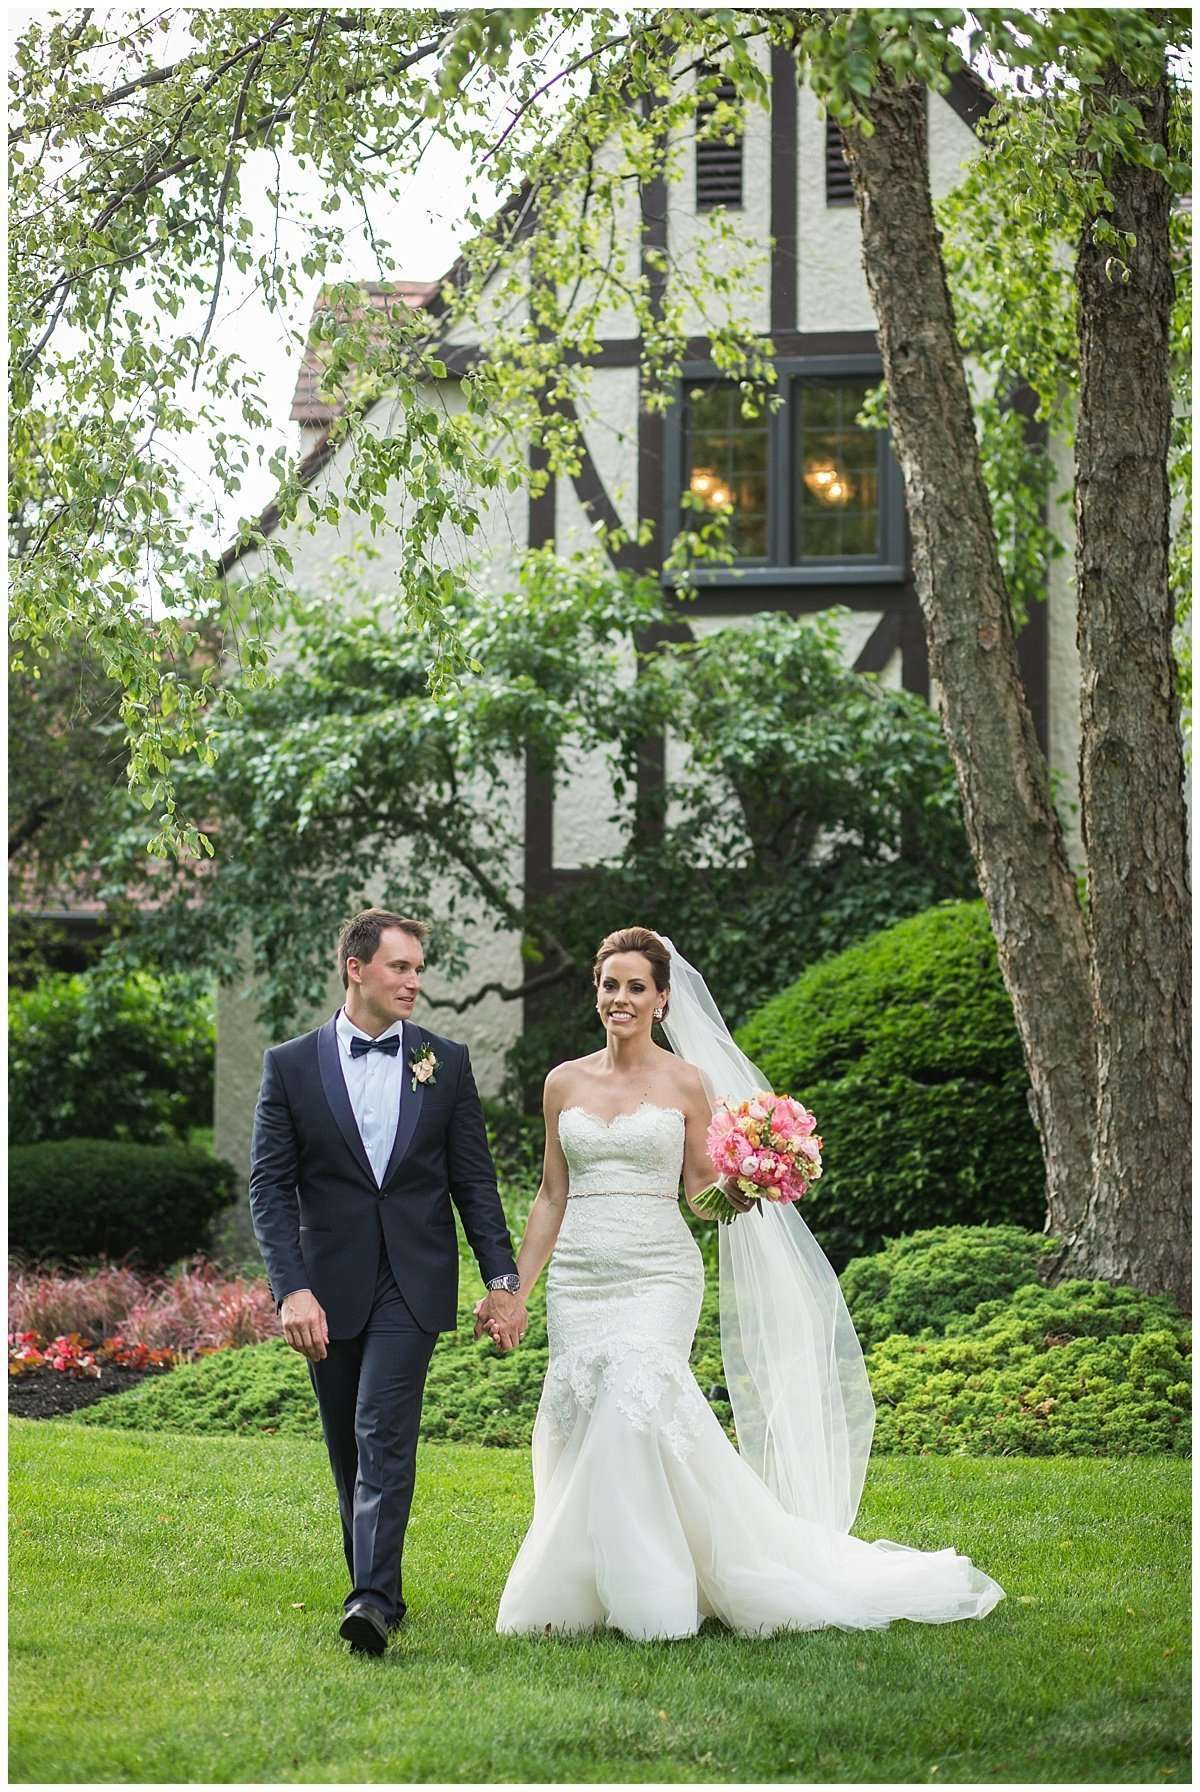 Kim & Lee | A Summer Wedding at Brookside Country Club 74